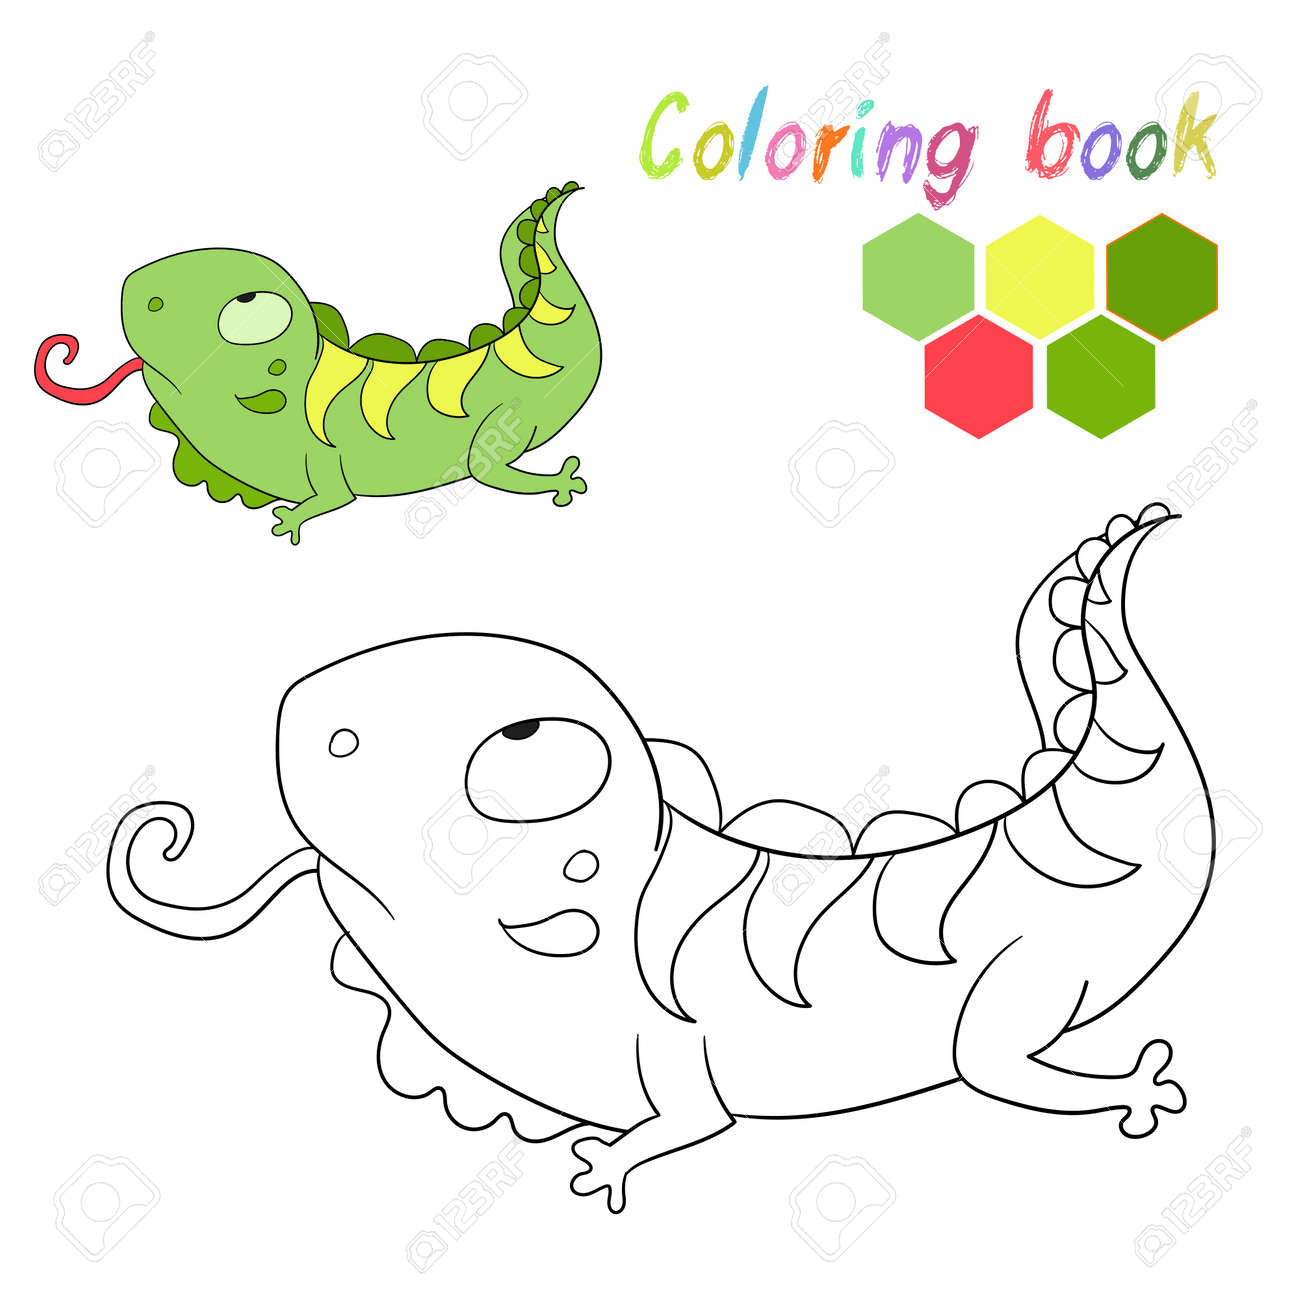 Coloring Book Iguana Kids Layout For Game Doodle Cartoon Hand Drawn Vector Illustration Stock